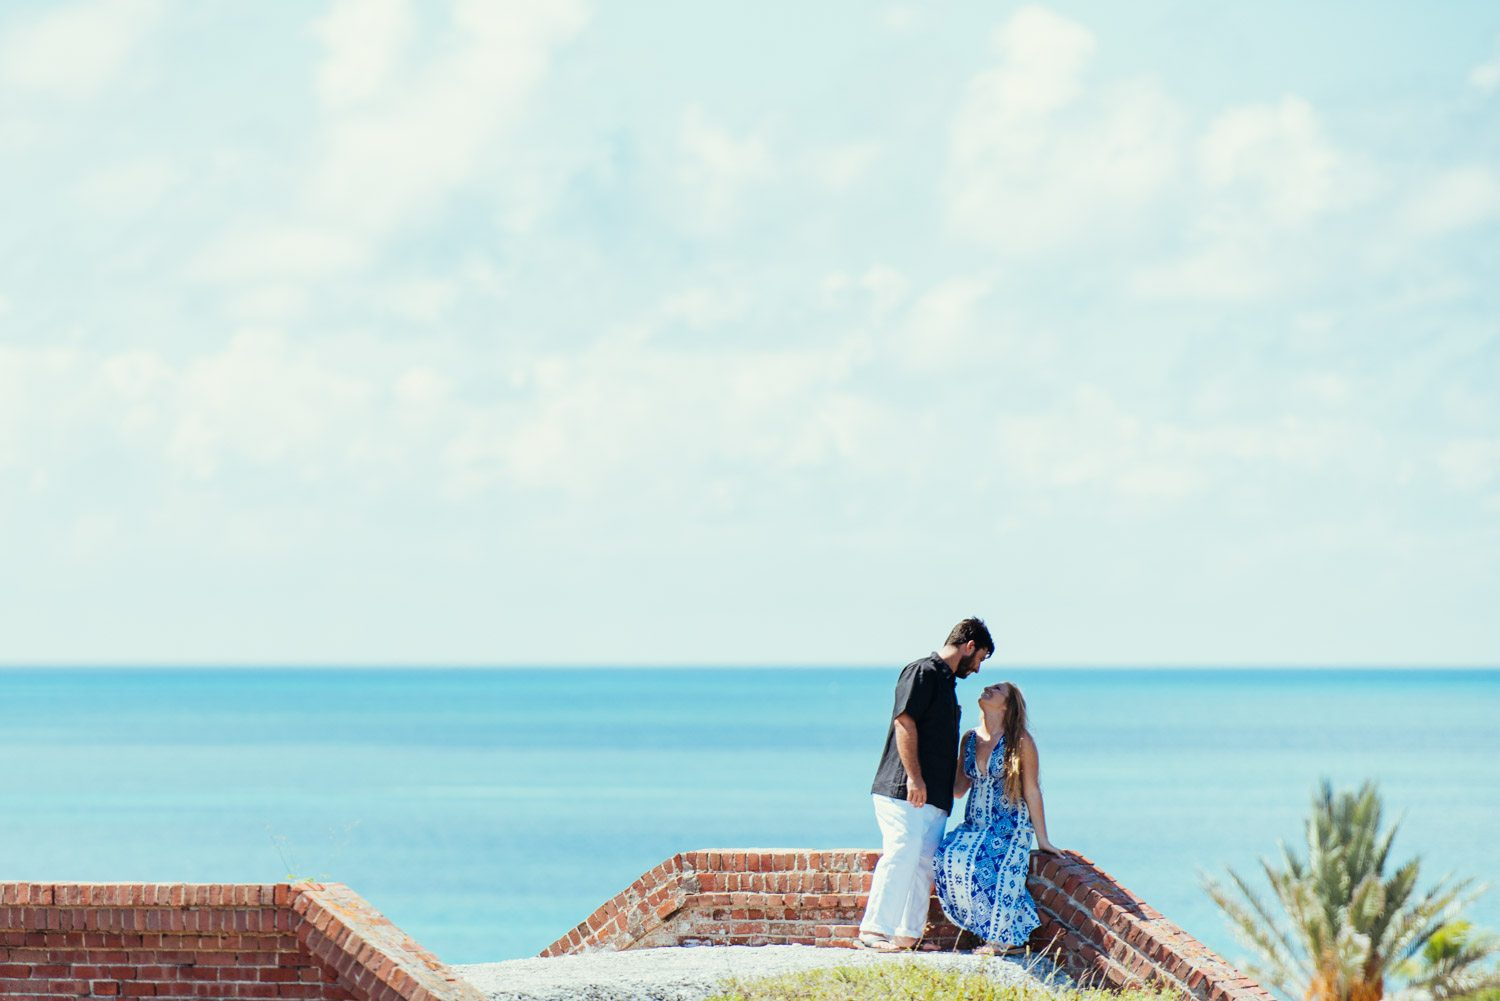 Katherine Oscar Engagement Photos Dry Tortugas 48 - Island Adventure Engagement Session - Dry Tortugas National Park and Fort Jefferson